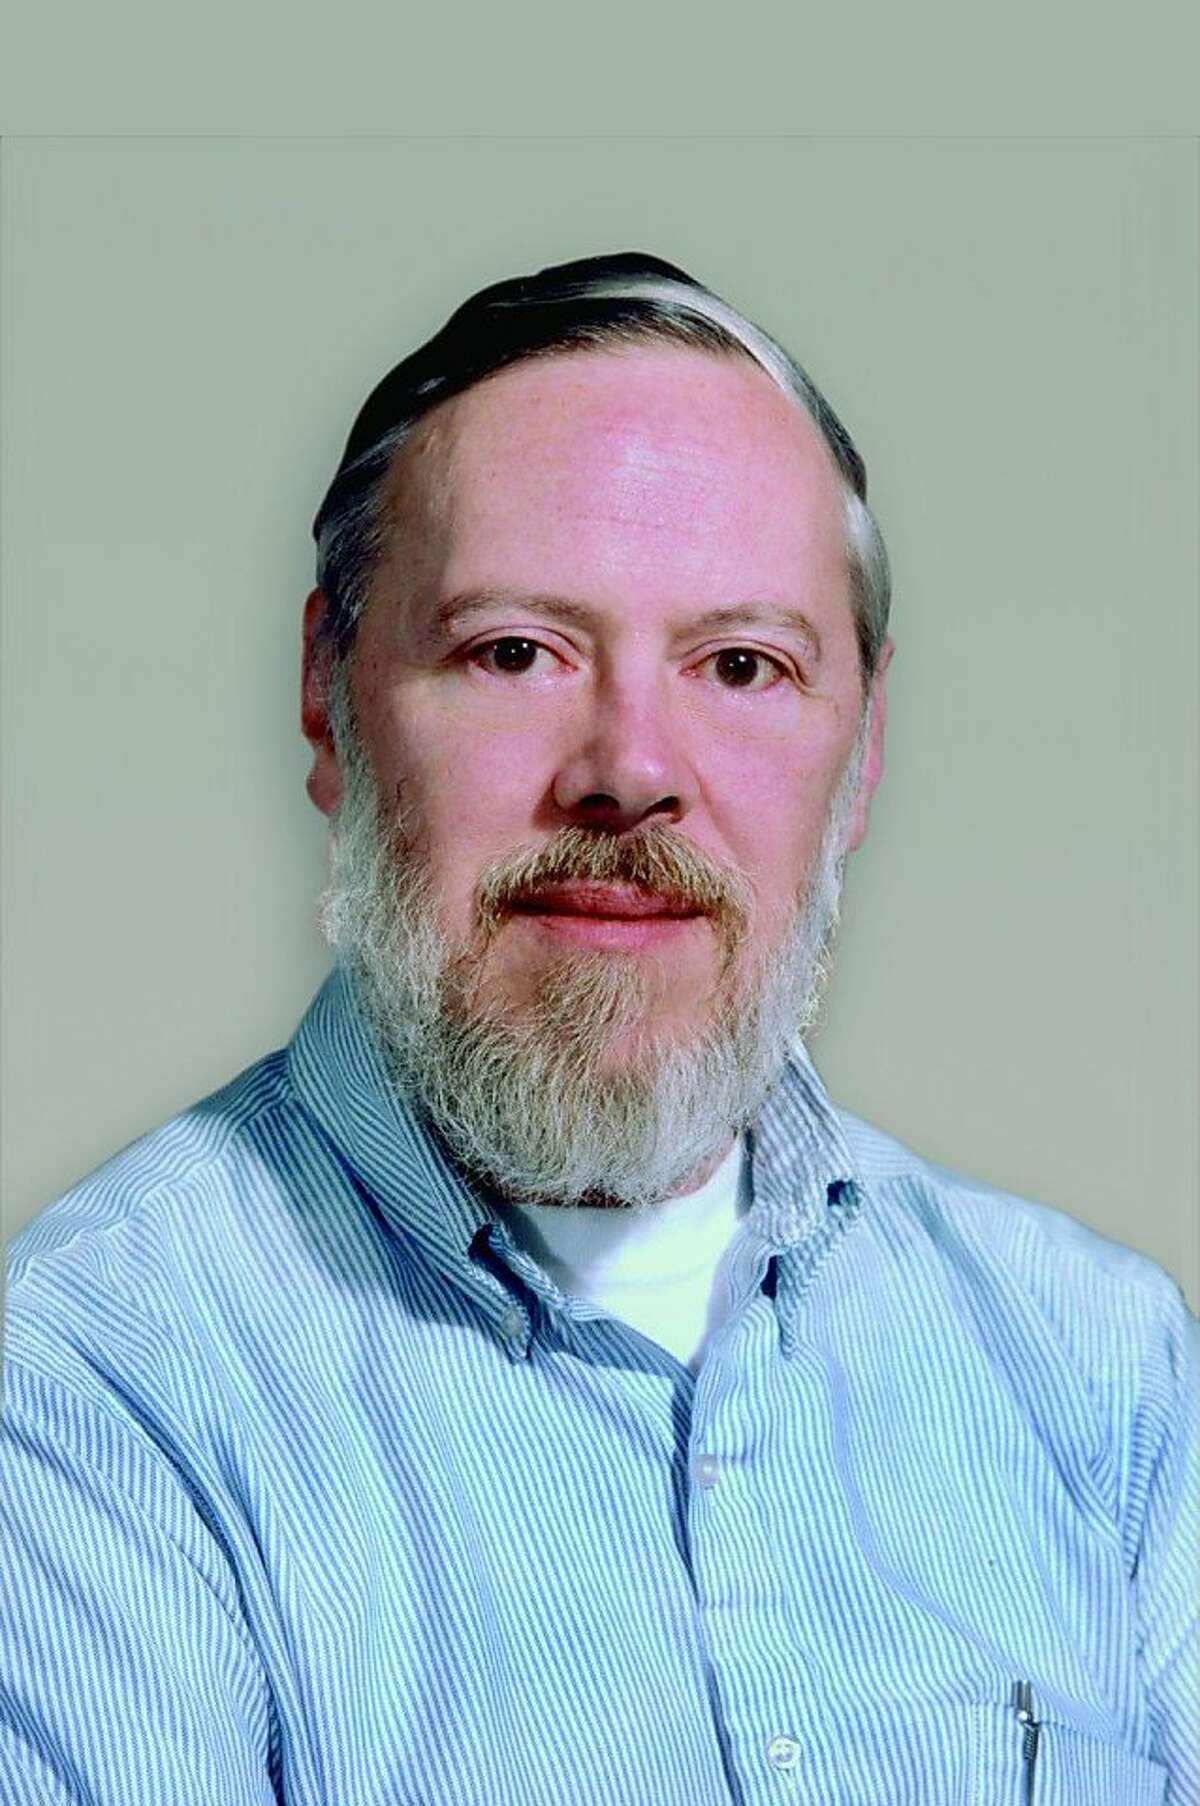 Mug shot of computer scientist Dennis Ritchie, who with Ken Thompson have been awarded a 2011 Japan Prize for Information and Communications for their work creating the UNIX computer operating system while working a researchers for Bell Labs in 1969. Ran on: 01-25-2011 Dennis Ritchie